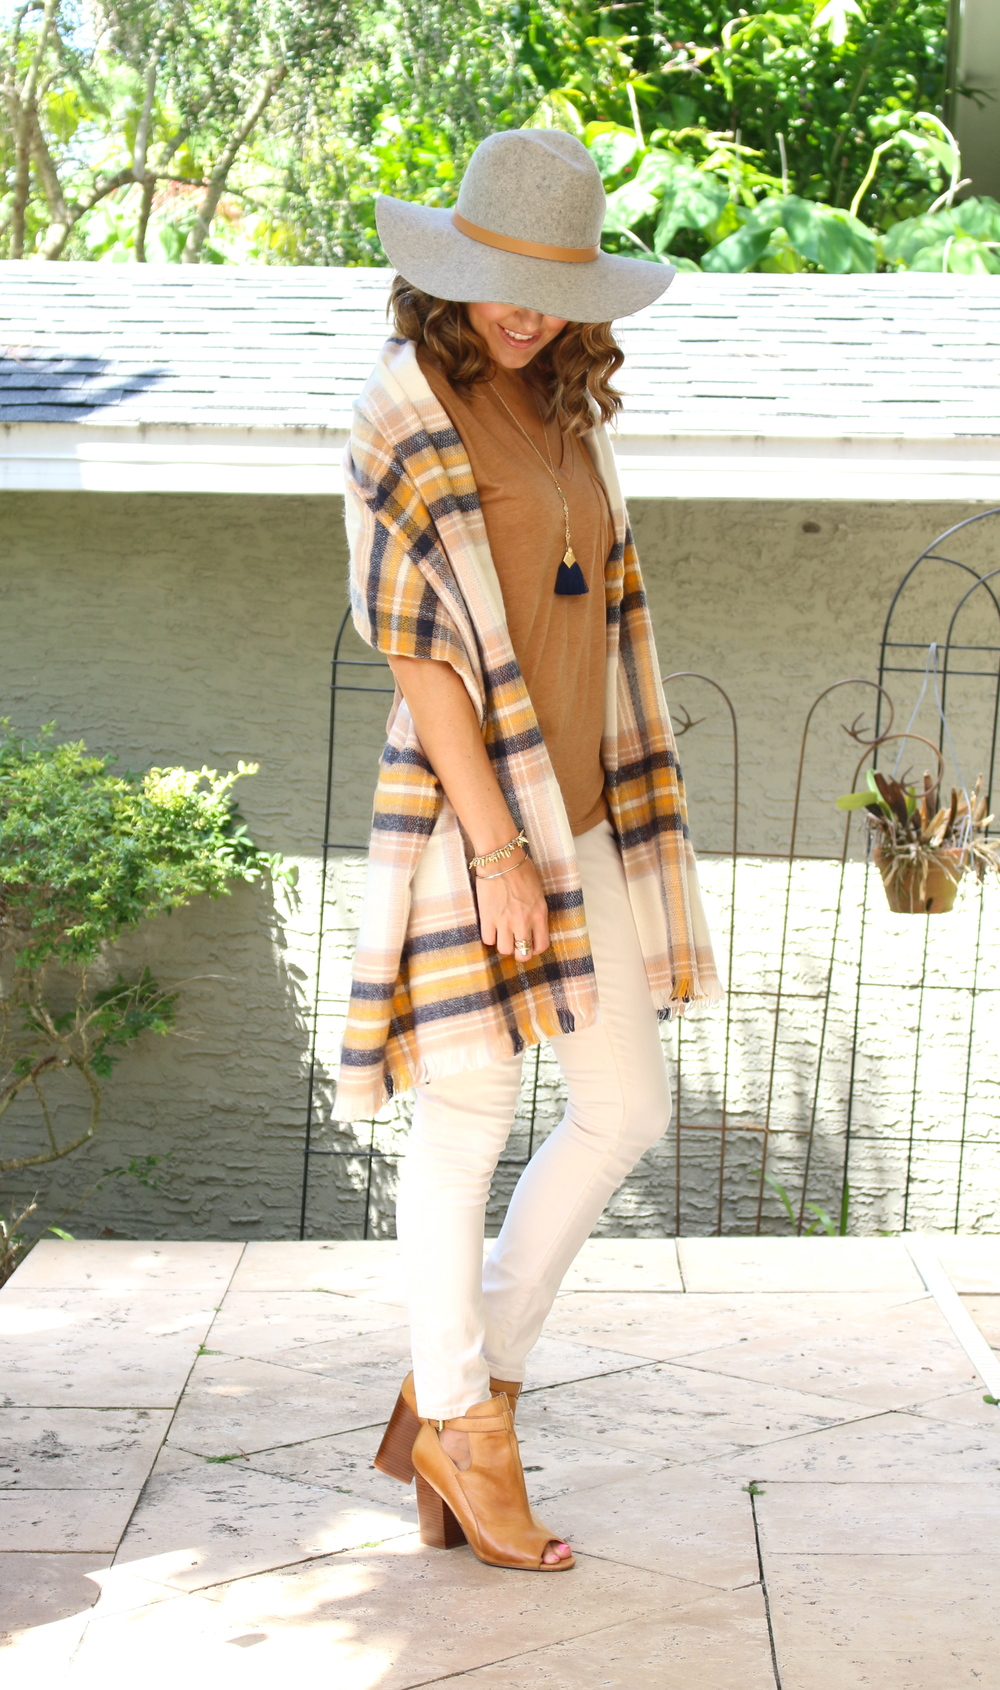 Wool hat, plaid scarf, ivory jeans